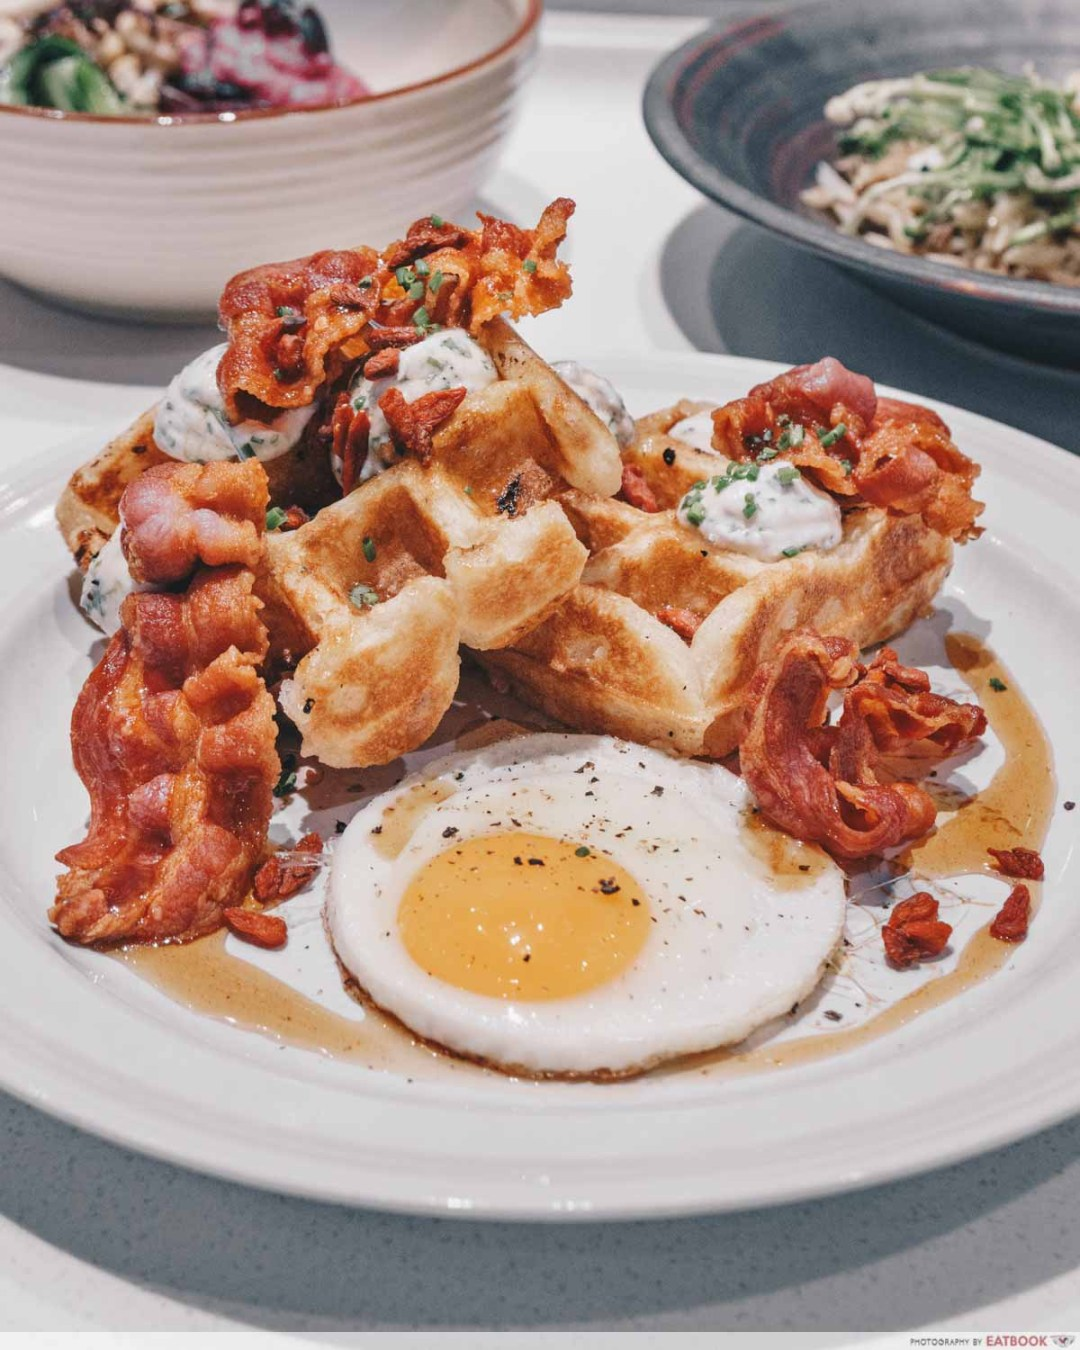 Tiong Bahru Bakery Diner 100% Sourdough Waffle-Savoury